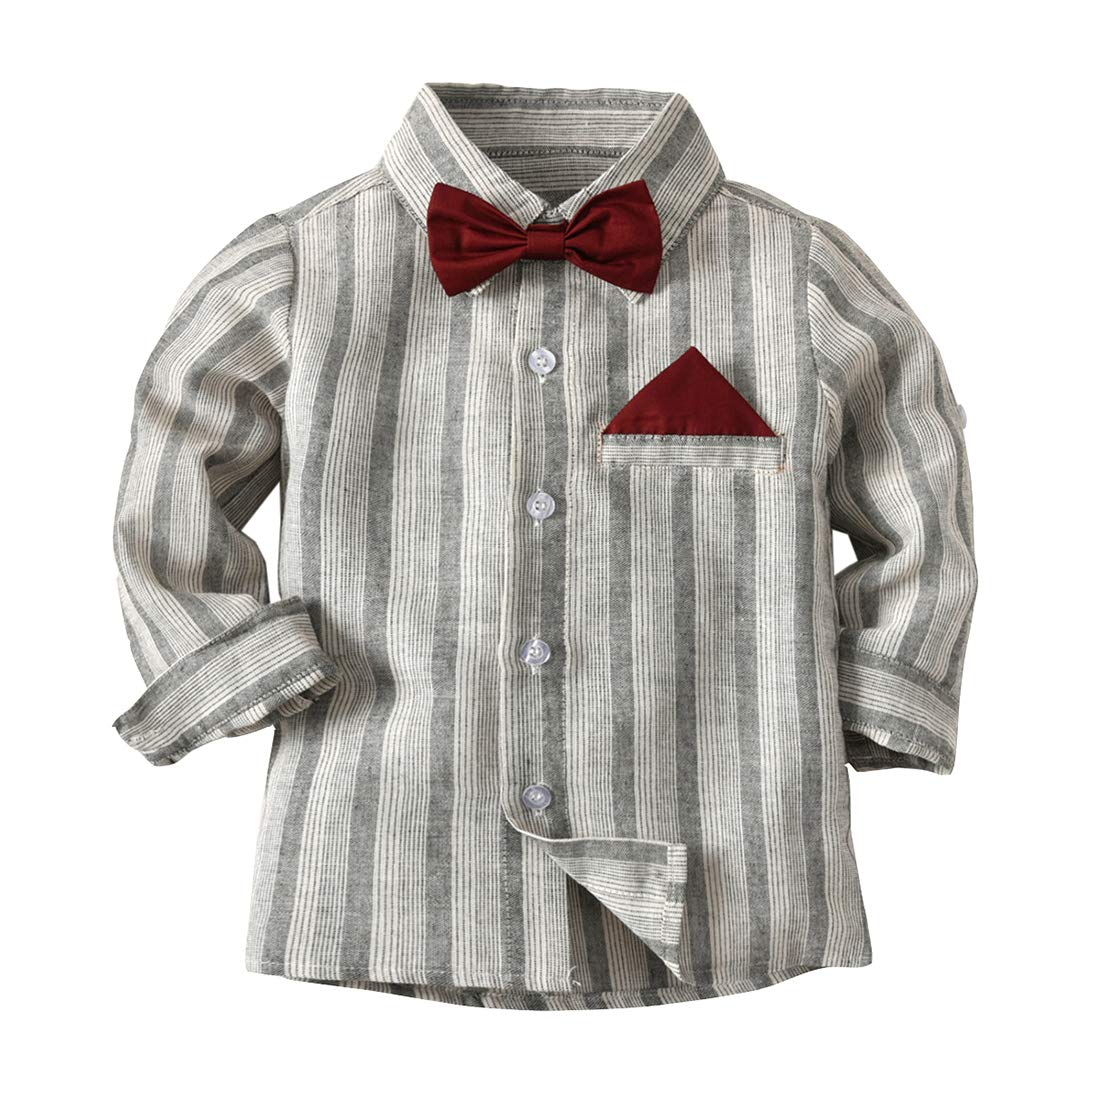 Fairy Baby Little Boys Gentleman Outfit Casual Long Sleeve Striped Formal Shirt with Bow Size 2T (Gray)